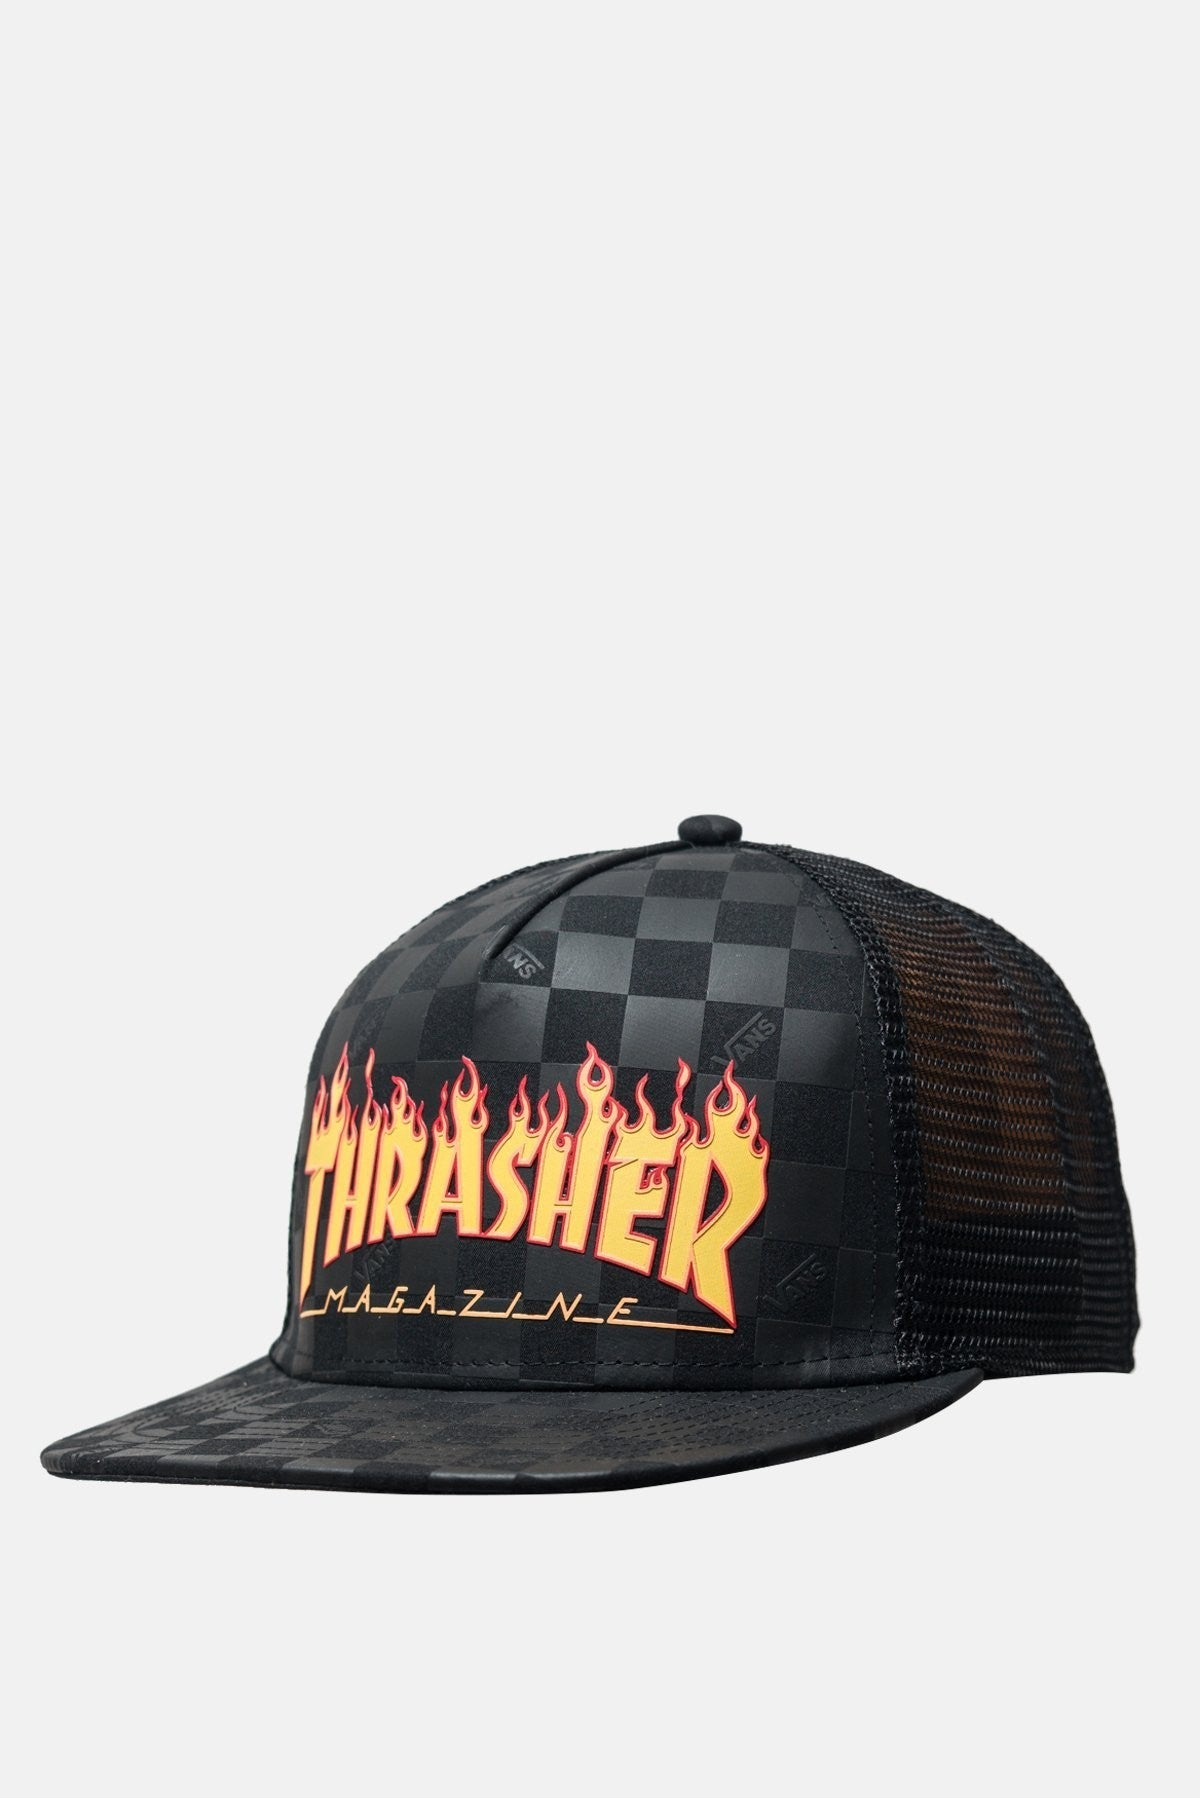 Vans x Thrasher Trucker Cap available from Priory 3630e736f05